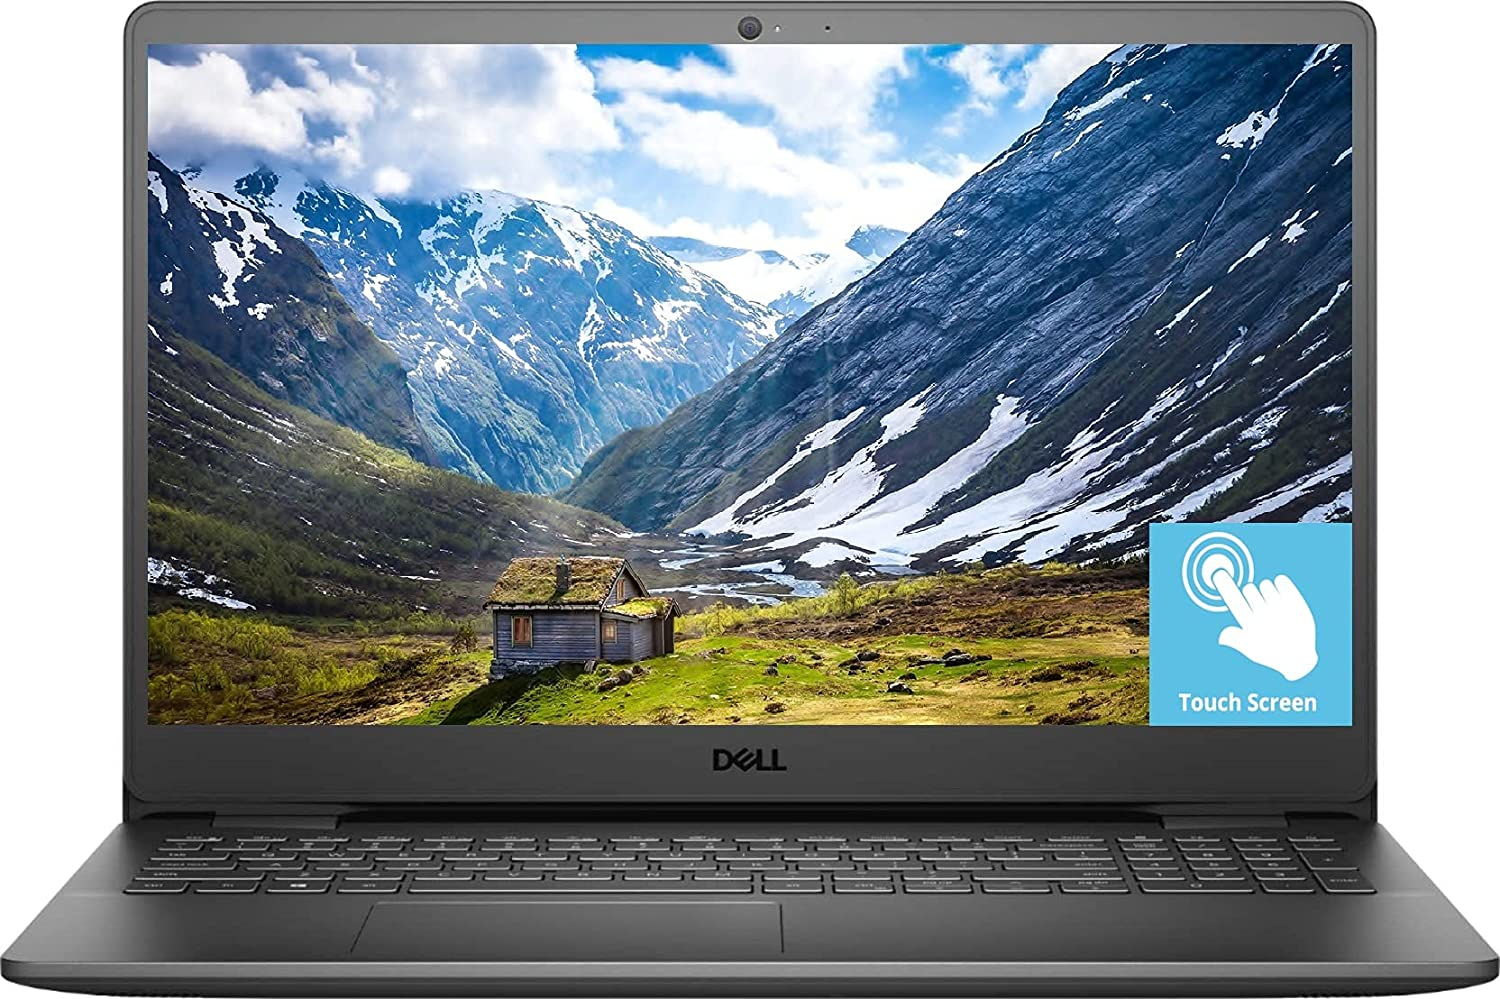 2021 Newest Dell Inspiron 3000 Laptop, 15.6 FHD Touch Display, Intel Core i5-1035G1, 12GB DDR4 RAM, 1TB Hard Disk Drive, Online Meeting Ready, Webcam, WiFi, HDMI, Bluetooth, Windows 10 Home, Black